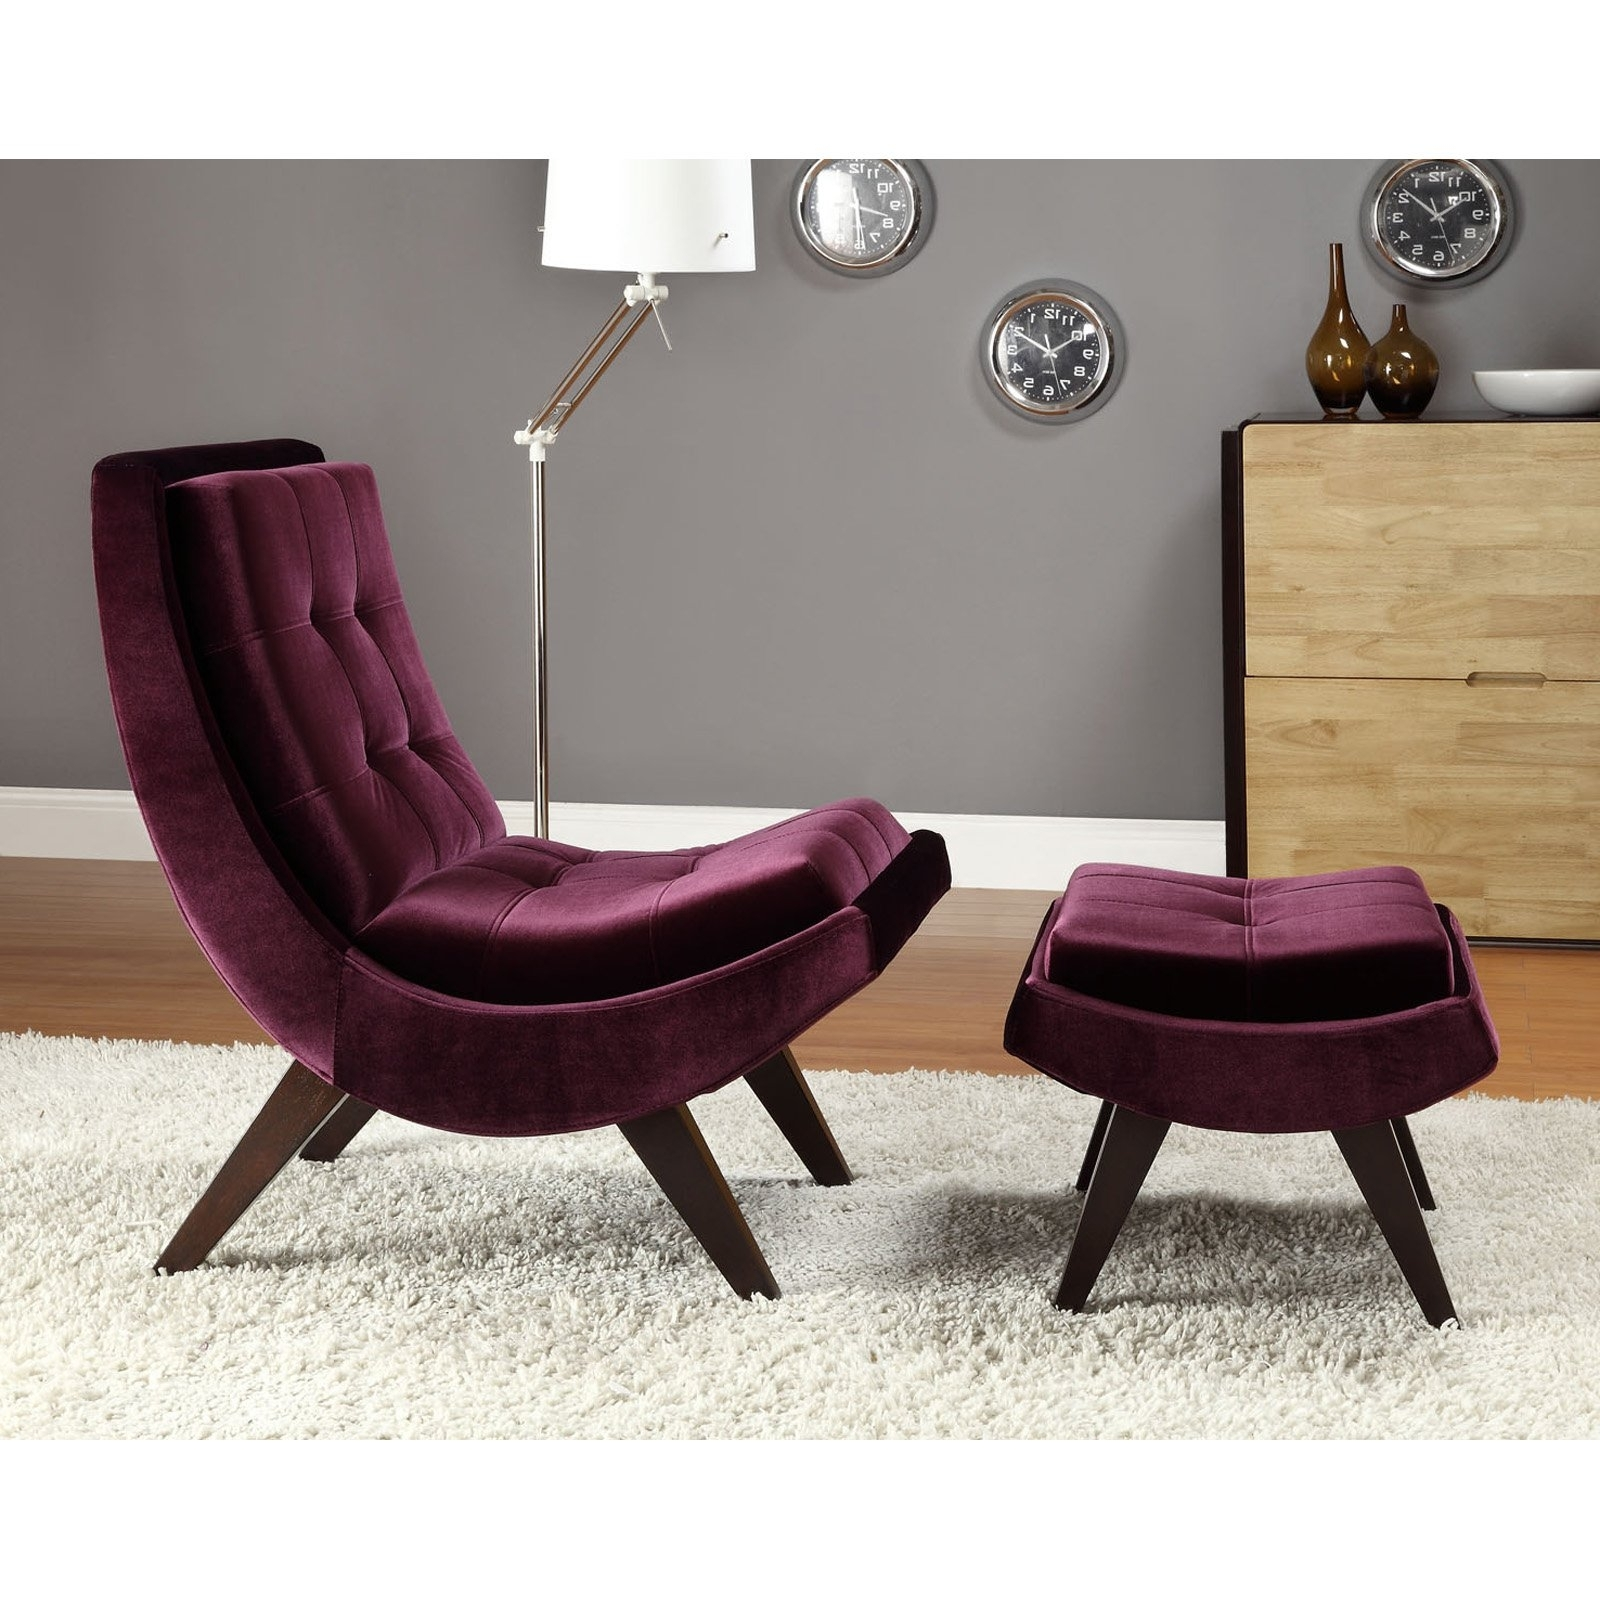 2019 Chairs With Ottoman Within Chelsea Lane Lashay Velvet Lounge Chair & Ottoman – Purple (View 6 of 20)